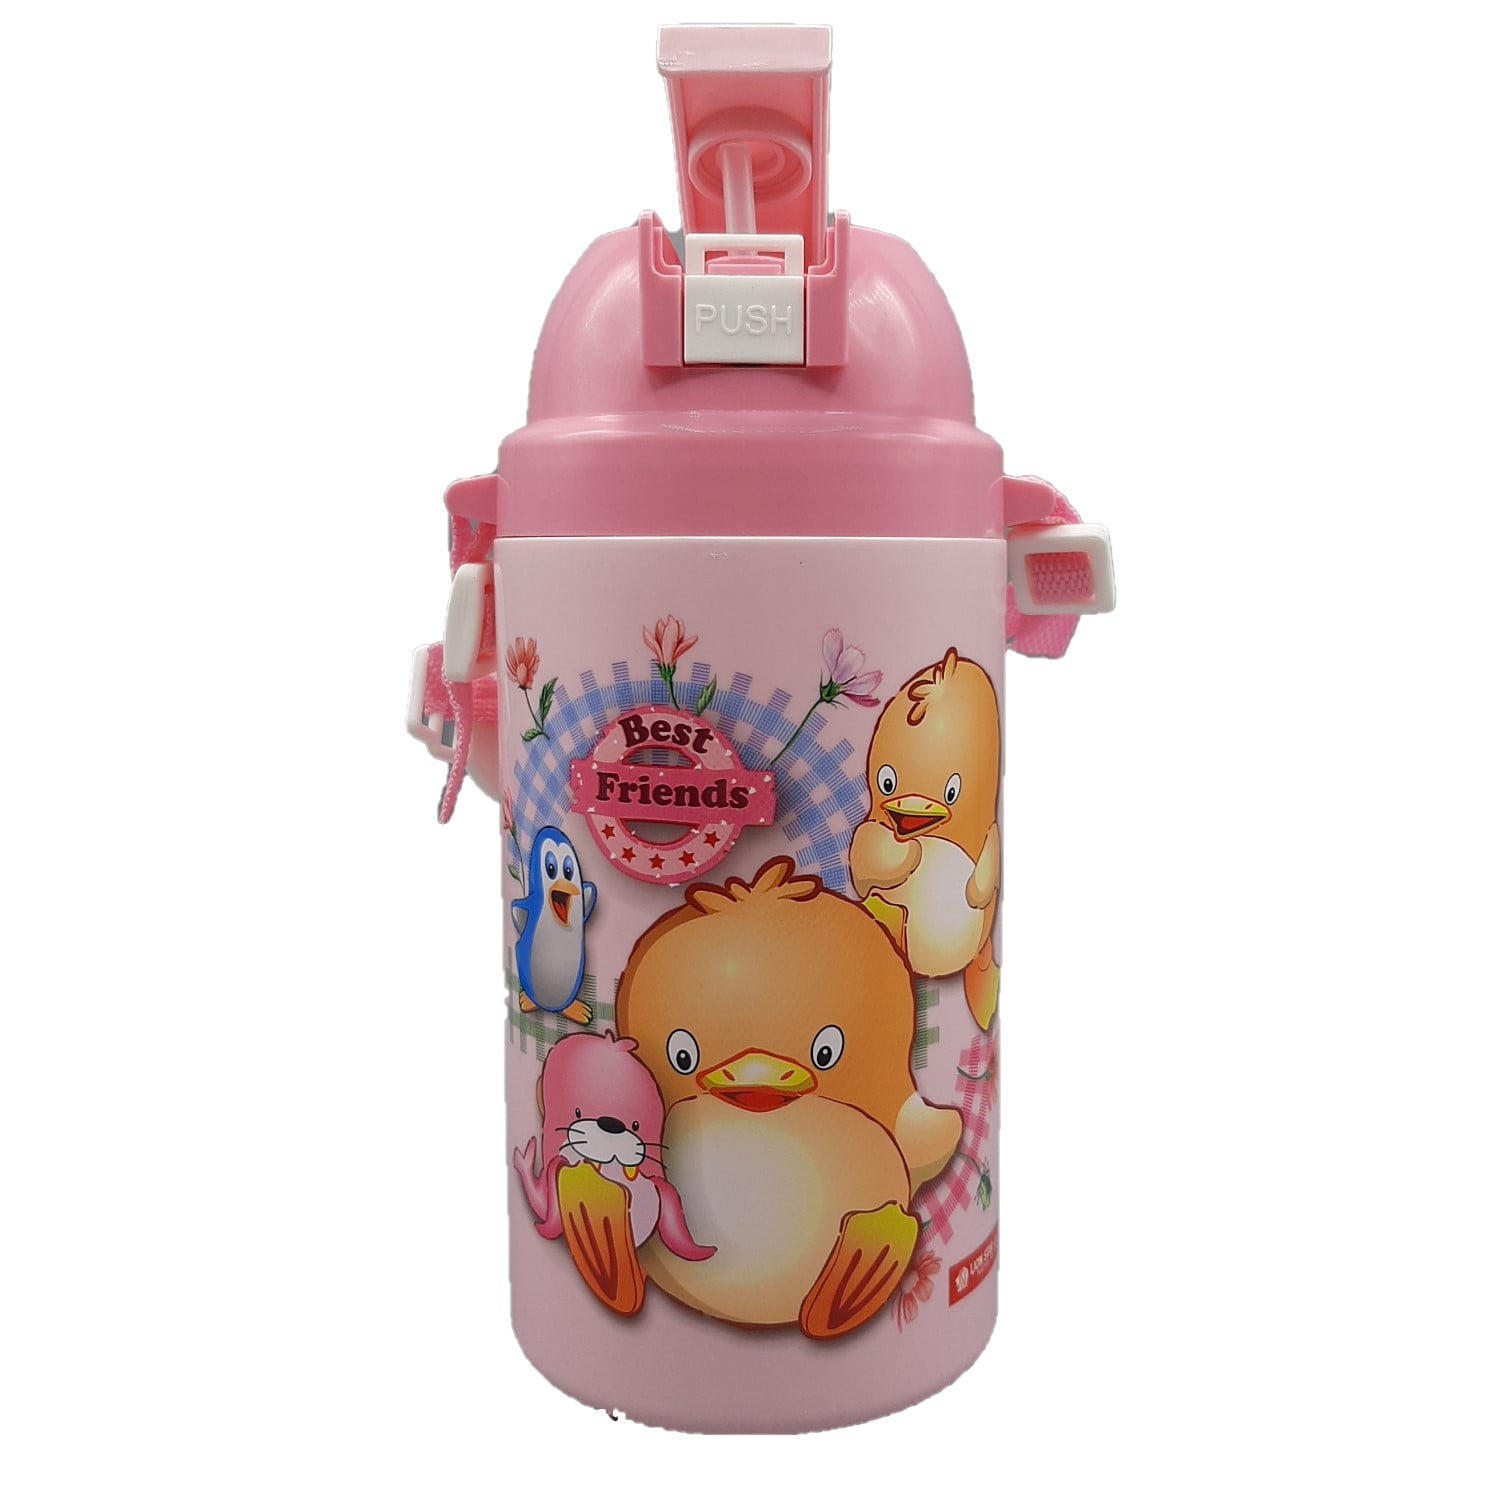 Lion Star Orion Water Bottle 700 ml Pink